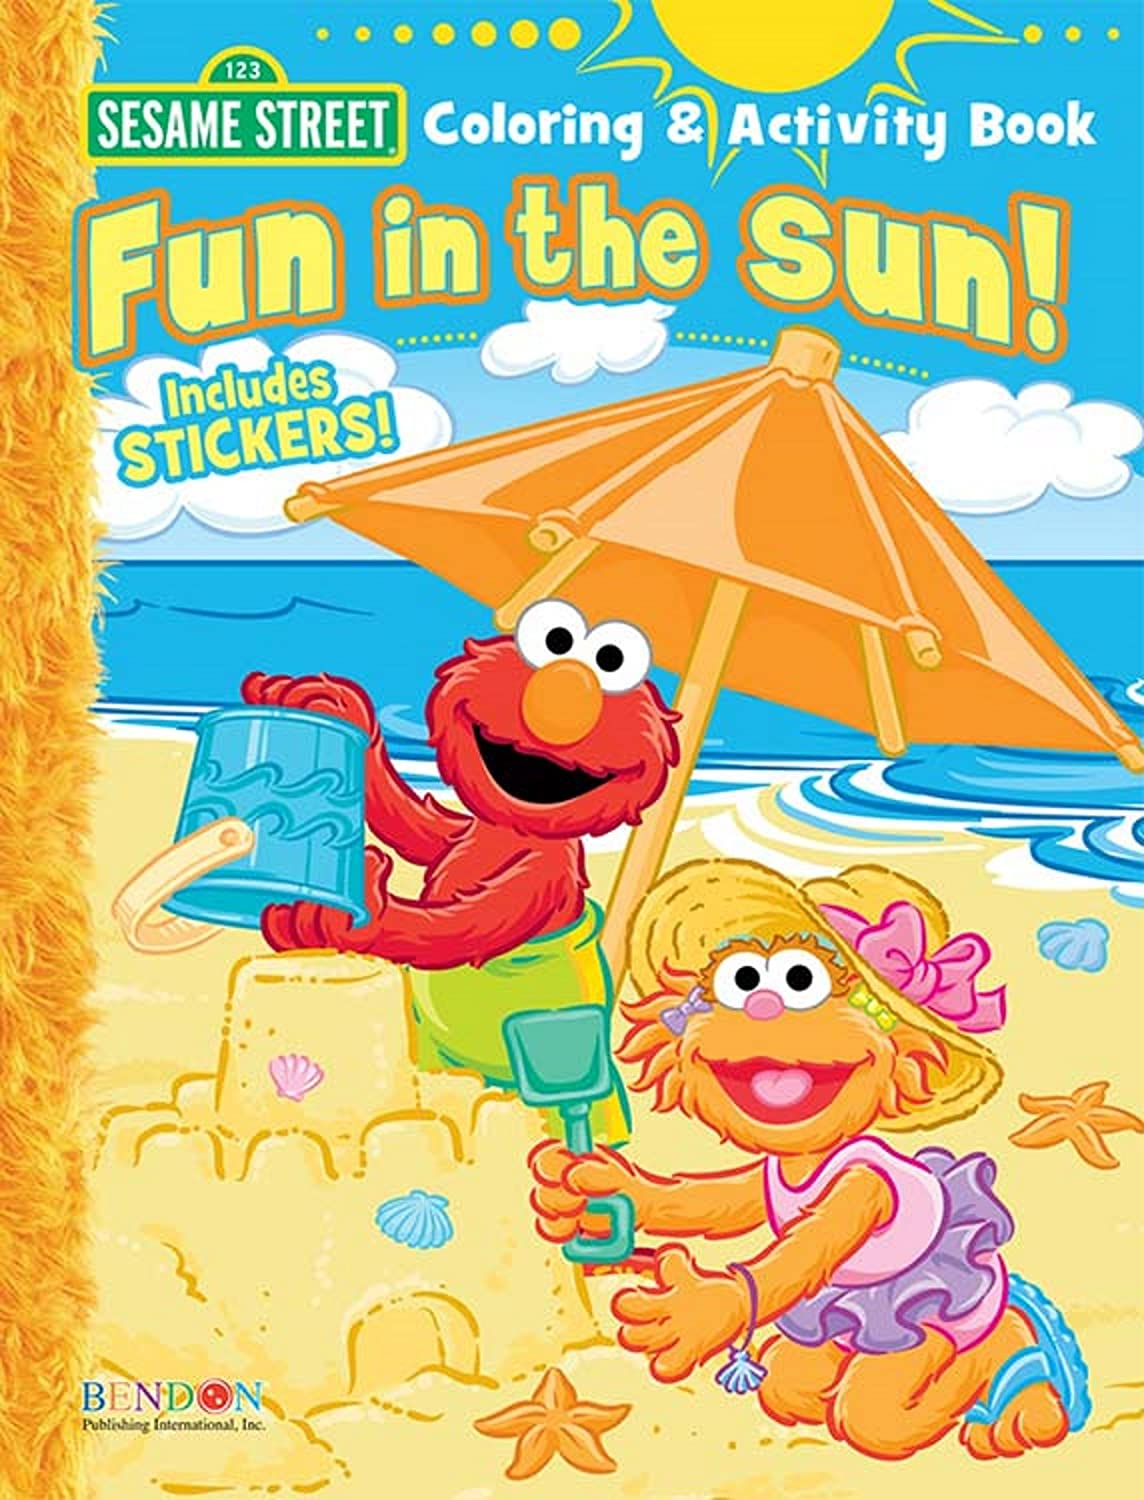 Includes Stickers Sesame Street Fun in the Sun Coloring and Activity Book